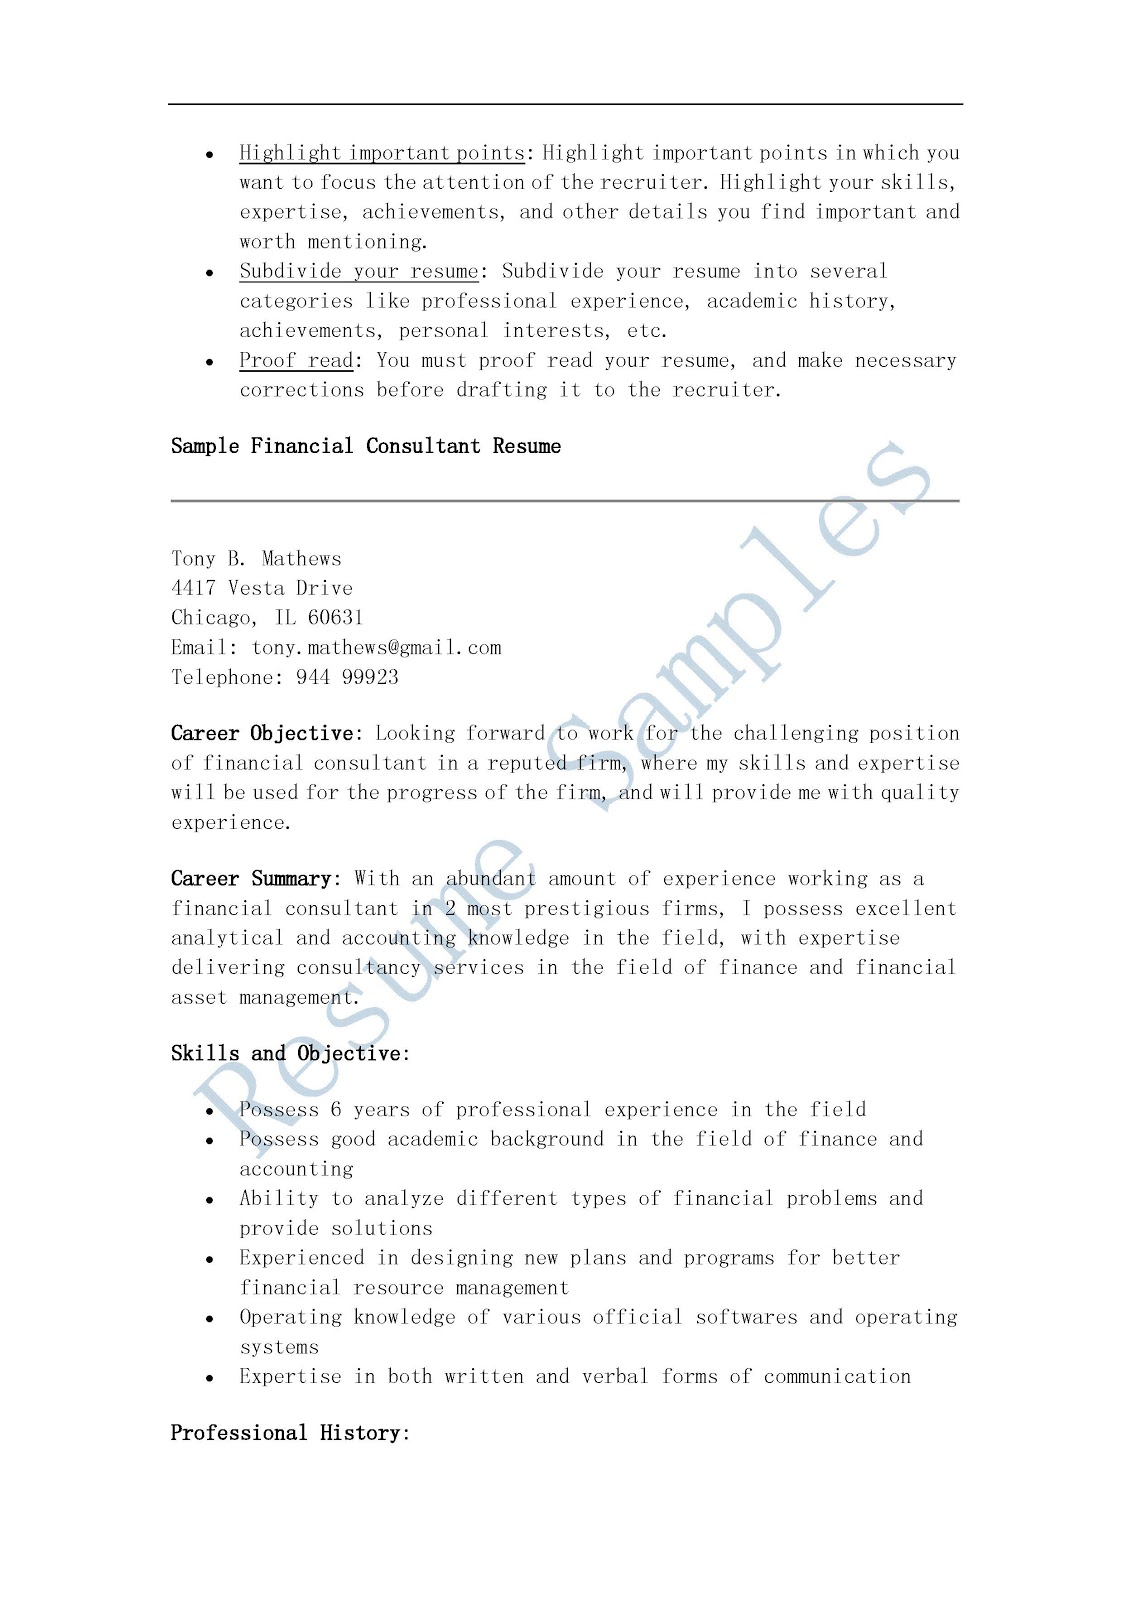 Real Estate Resume Tips The Real Estate Resume Real Estate Agent Resume  Examples U Tips Sales  Real Estate Resume Sample